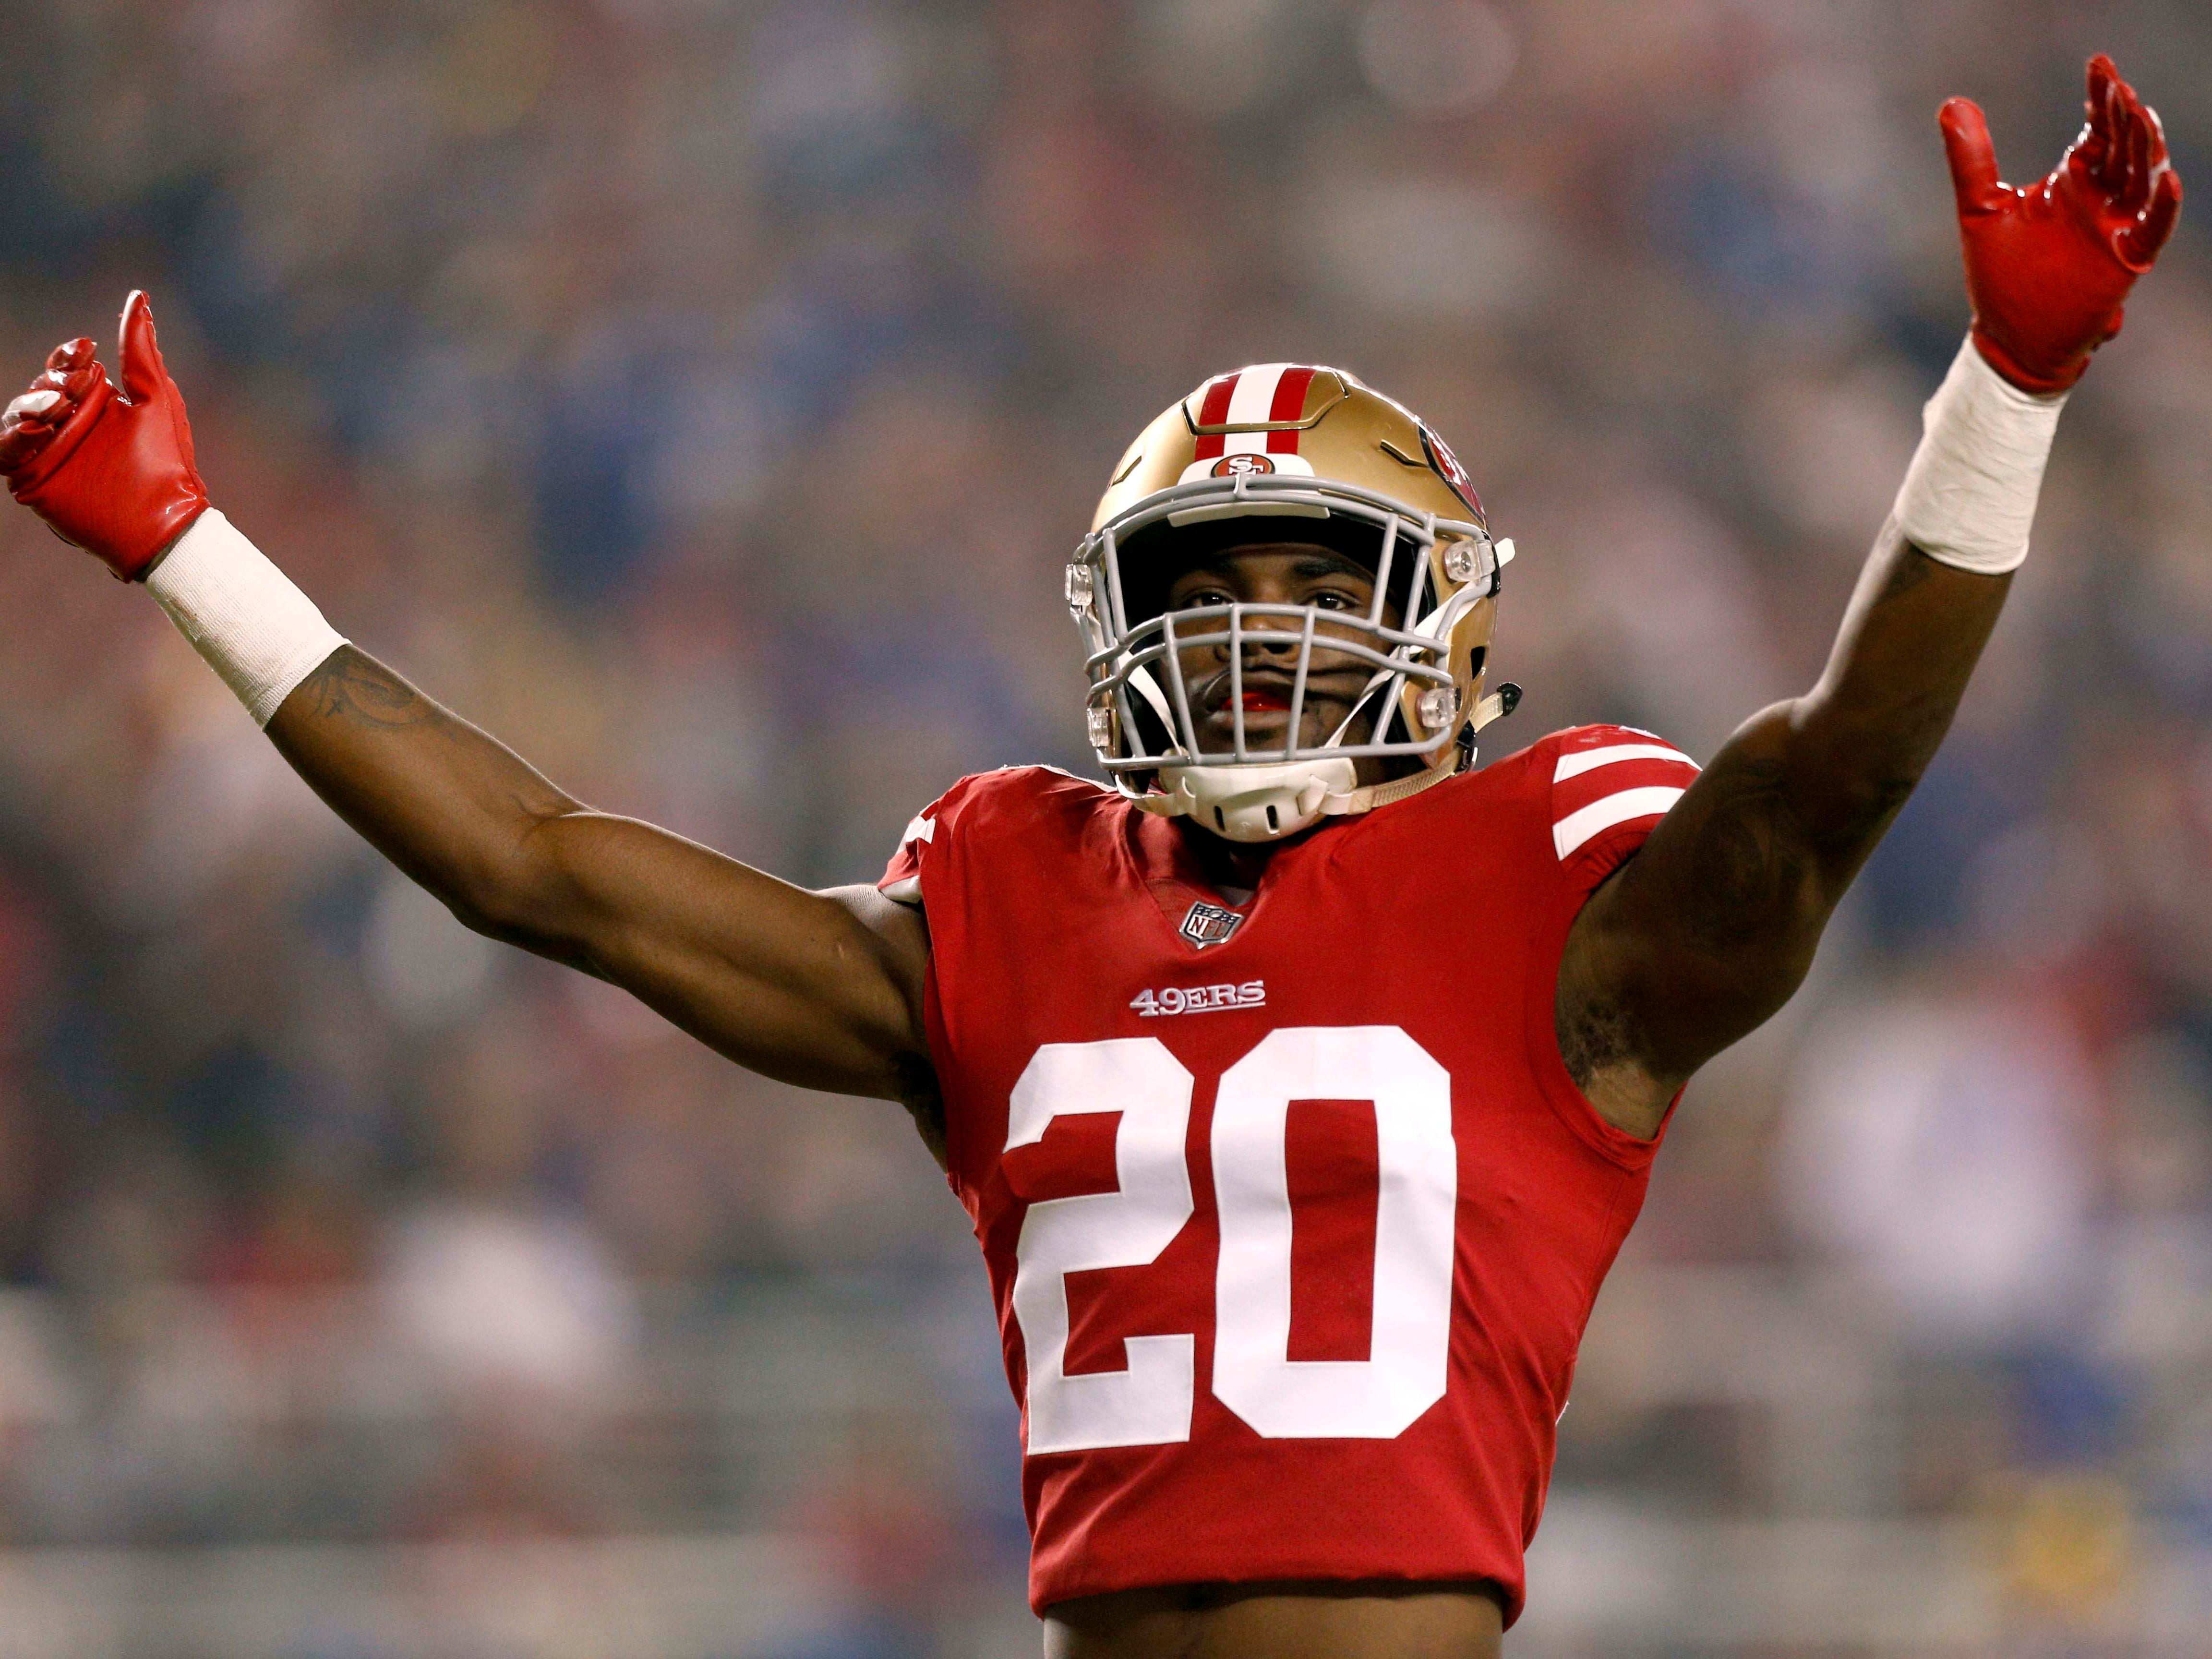 Jimmie Ward, DB, San Francisco 49ers (broken forearm, out for season)